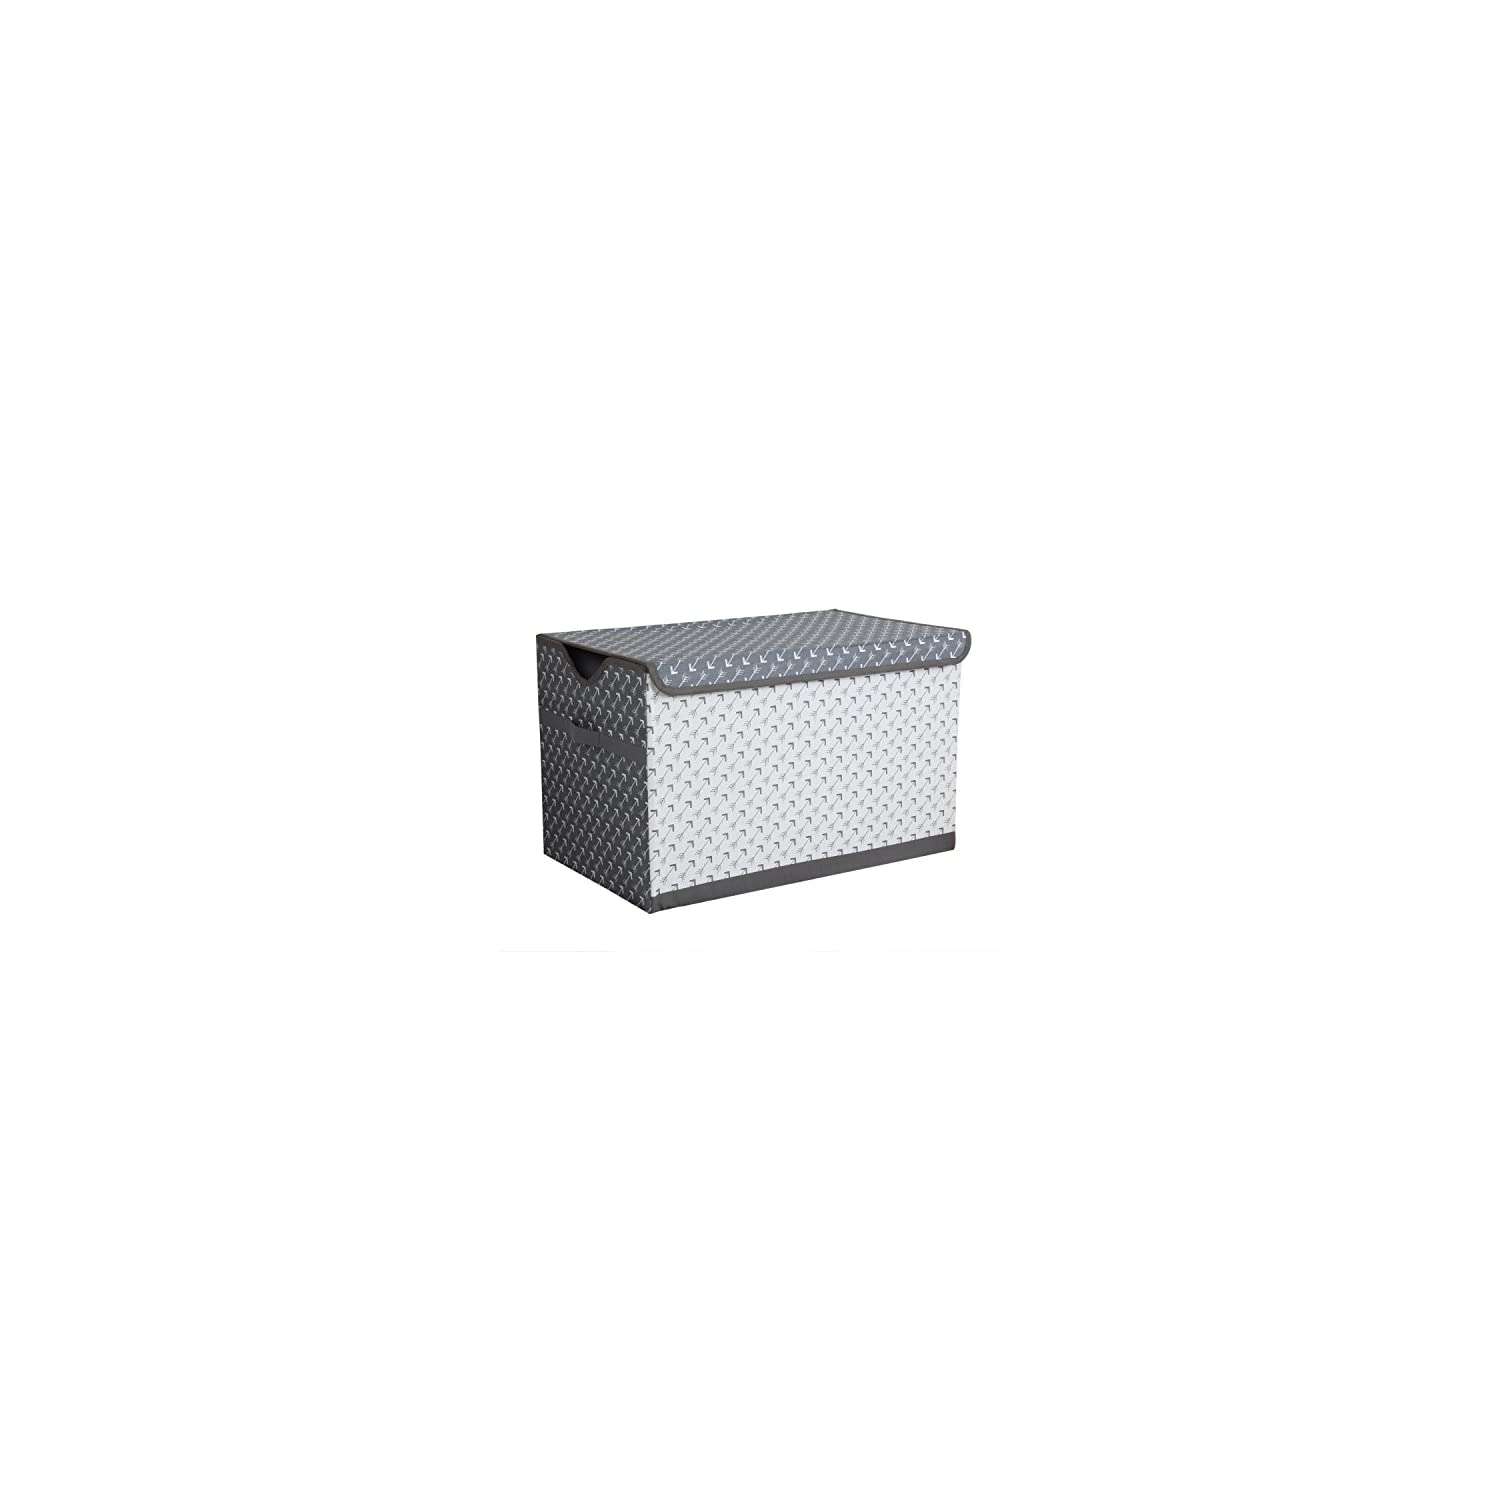 Bacati Arrows Storage Toy Chest, White/Grey